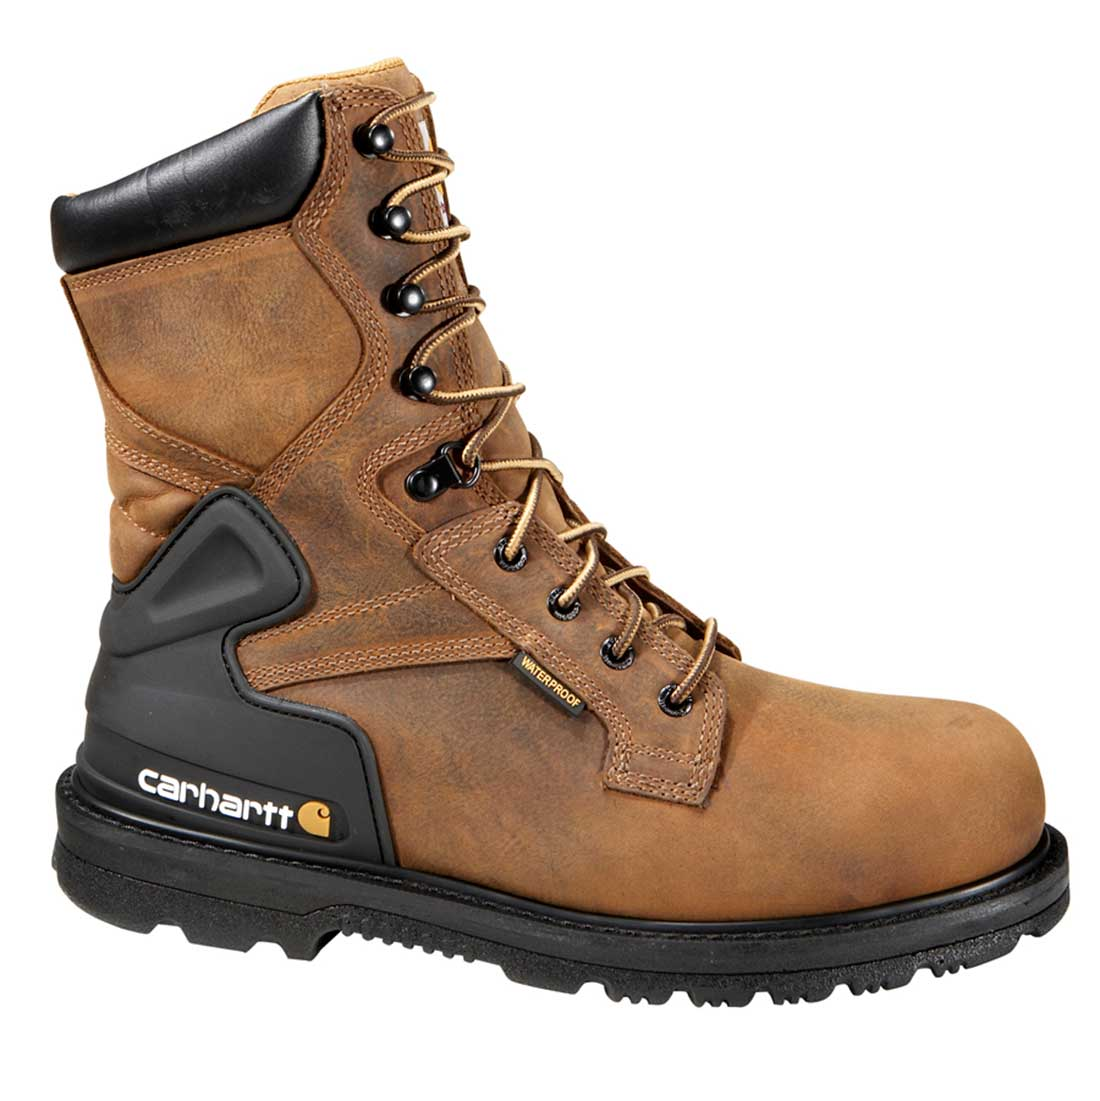 Carhartt Core Men's Bison Brown Leather Waterproof Steel Safety Toe 6-inch lace-up Work BootCore Men's Bison Brown Leather Waterproof Soft Toe 8-inch lace-up Work Boot